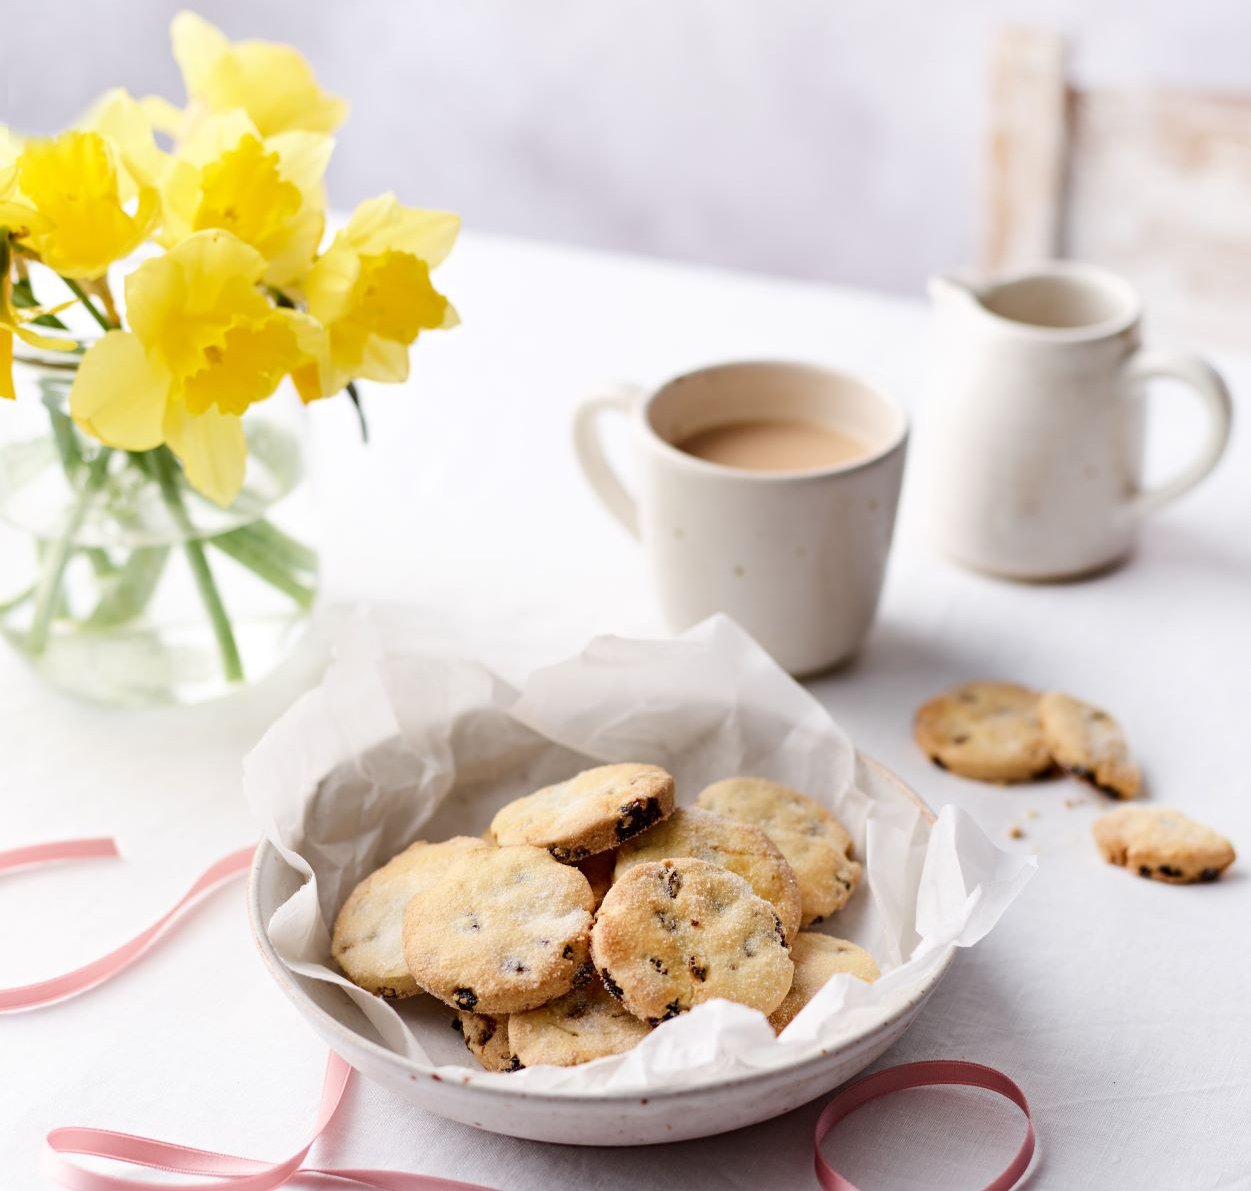 Gluten-free Easter biscuits